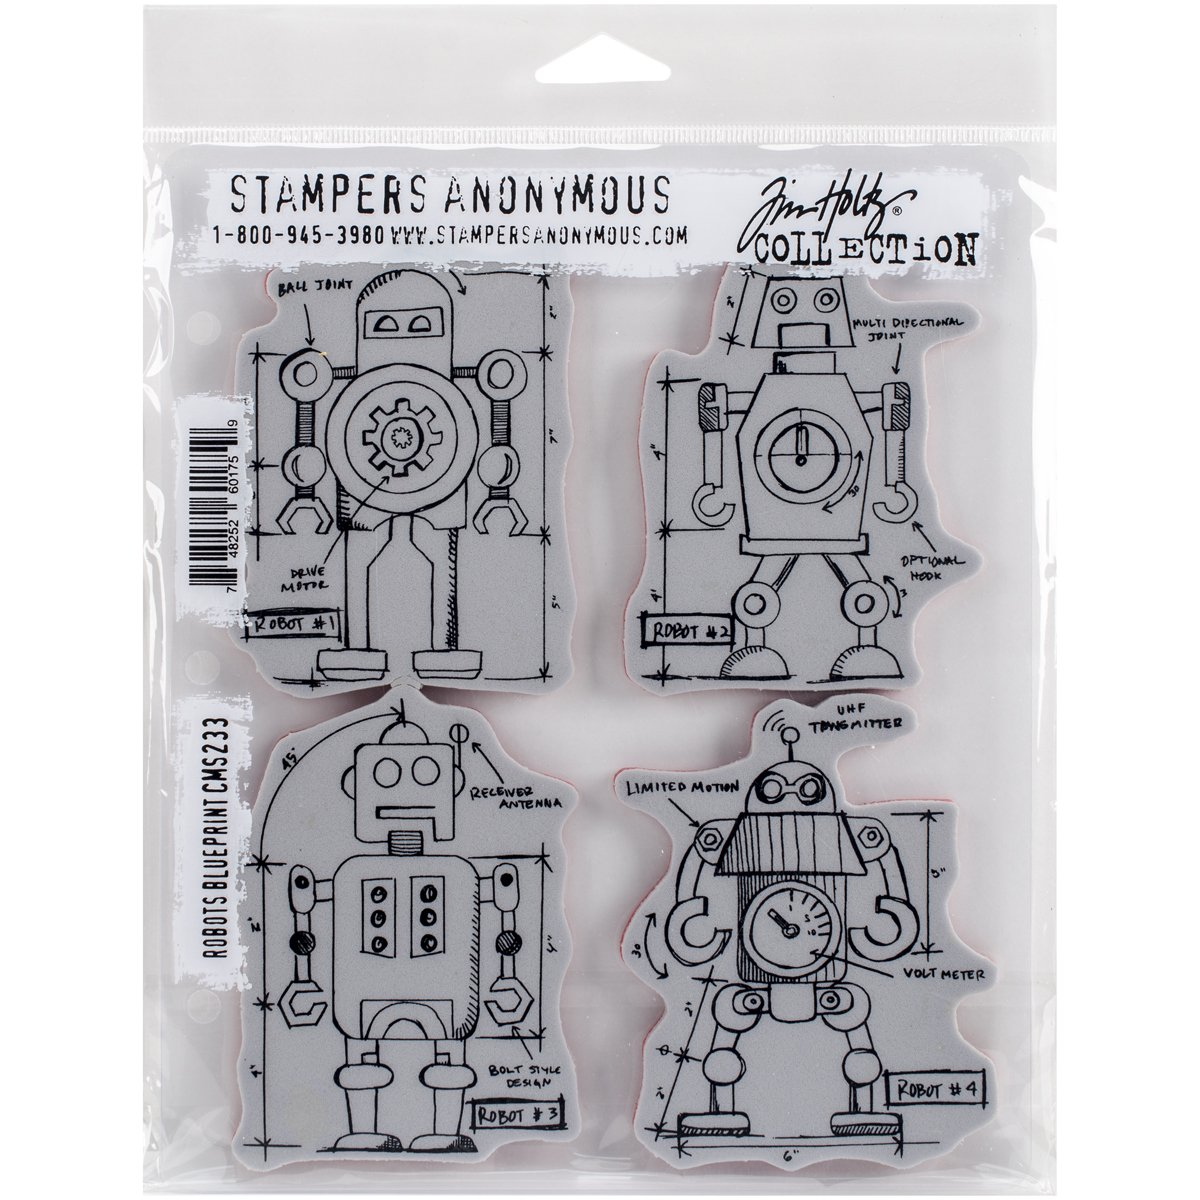 Stampers Anonymous Tim Holtz Cling Rubber Robots Blueprint Stamp Set 7 x 8.5